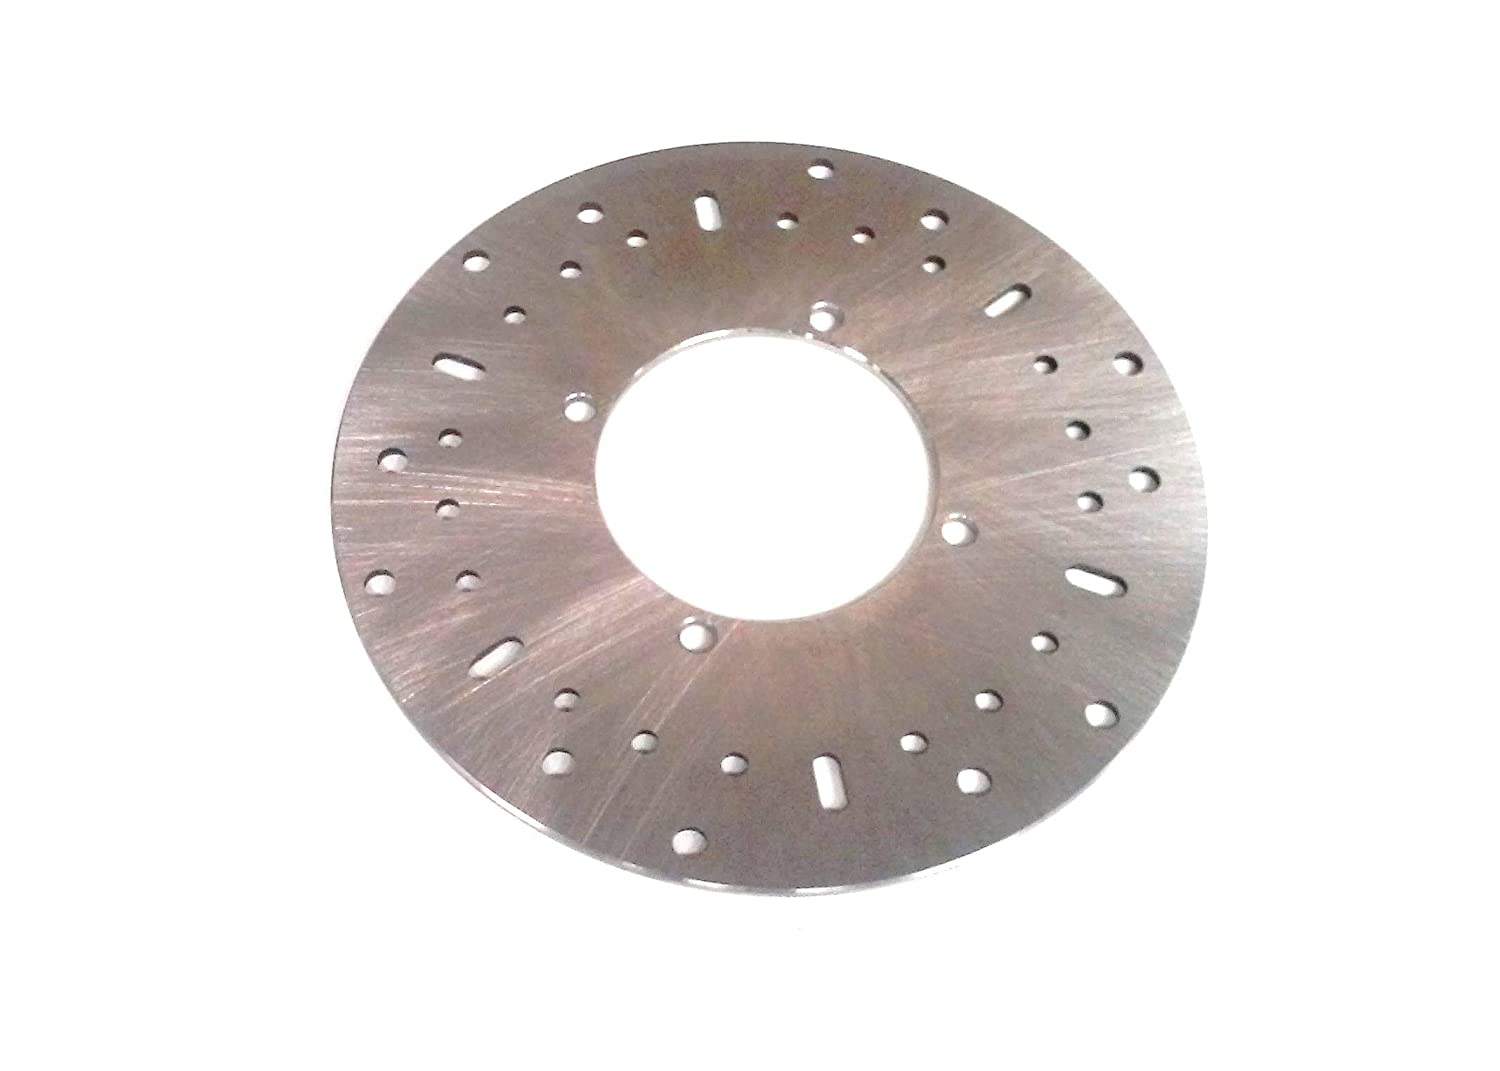 ATV Parts Connection BD-19 Front Left//Right Brake Rotor for Polaris ATVs /& UTVs Replacement for Polaris OEM # 5244314